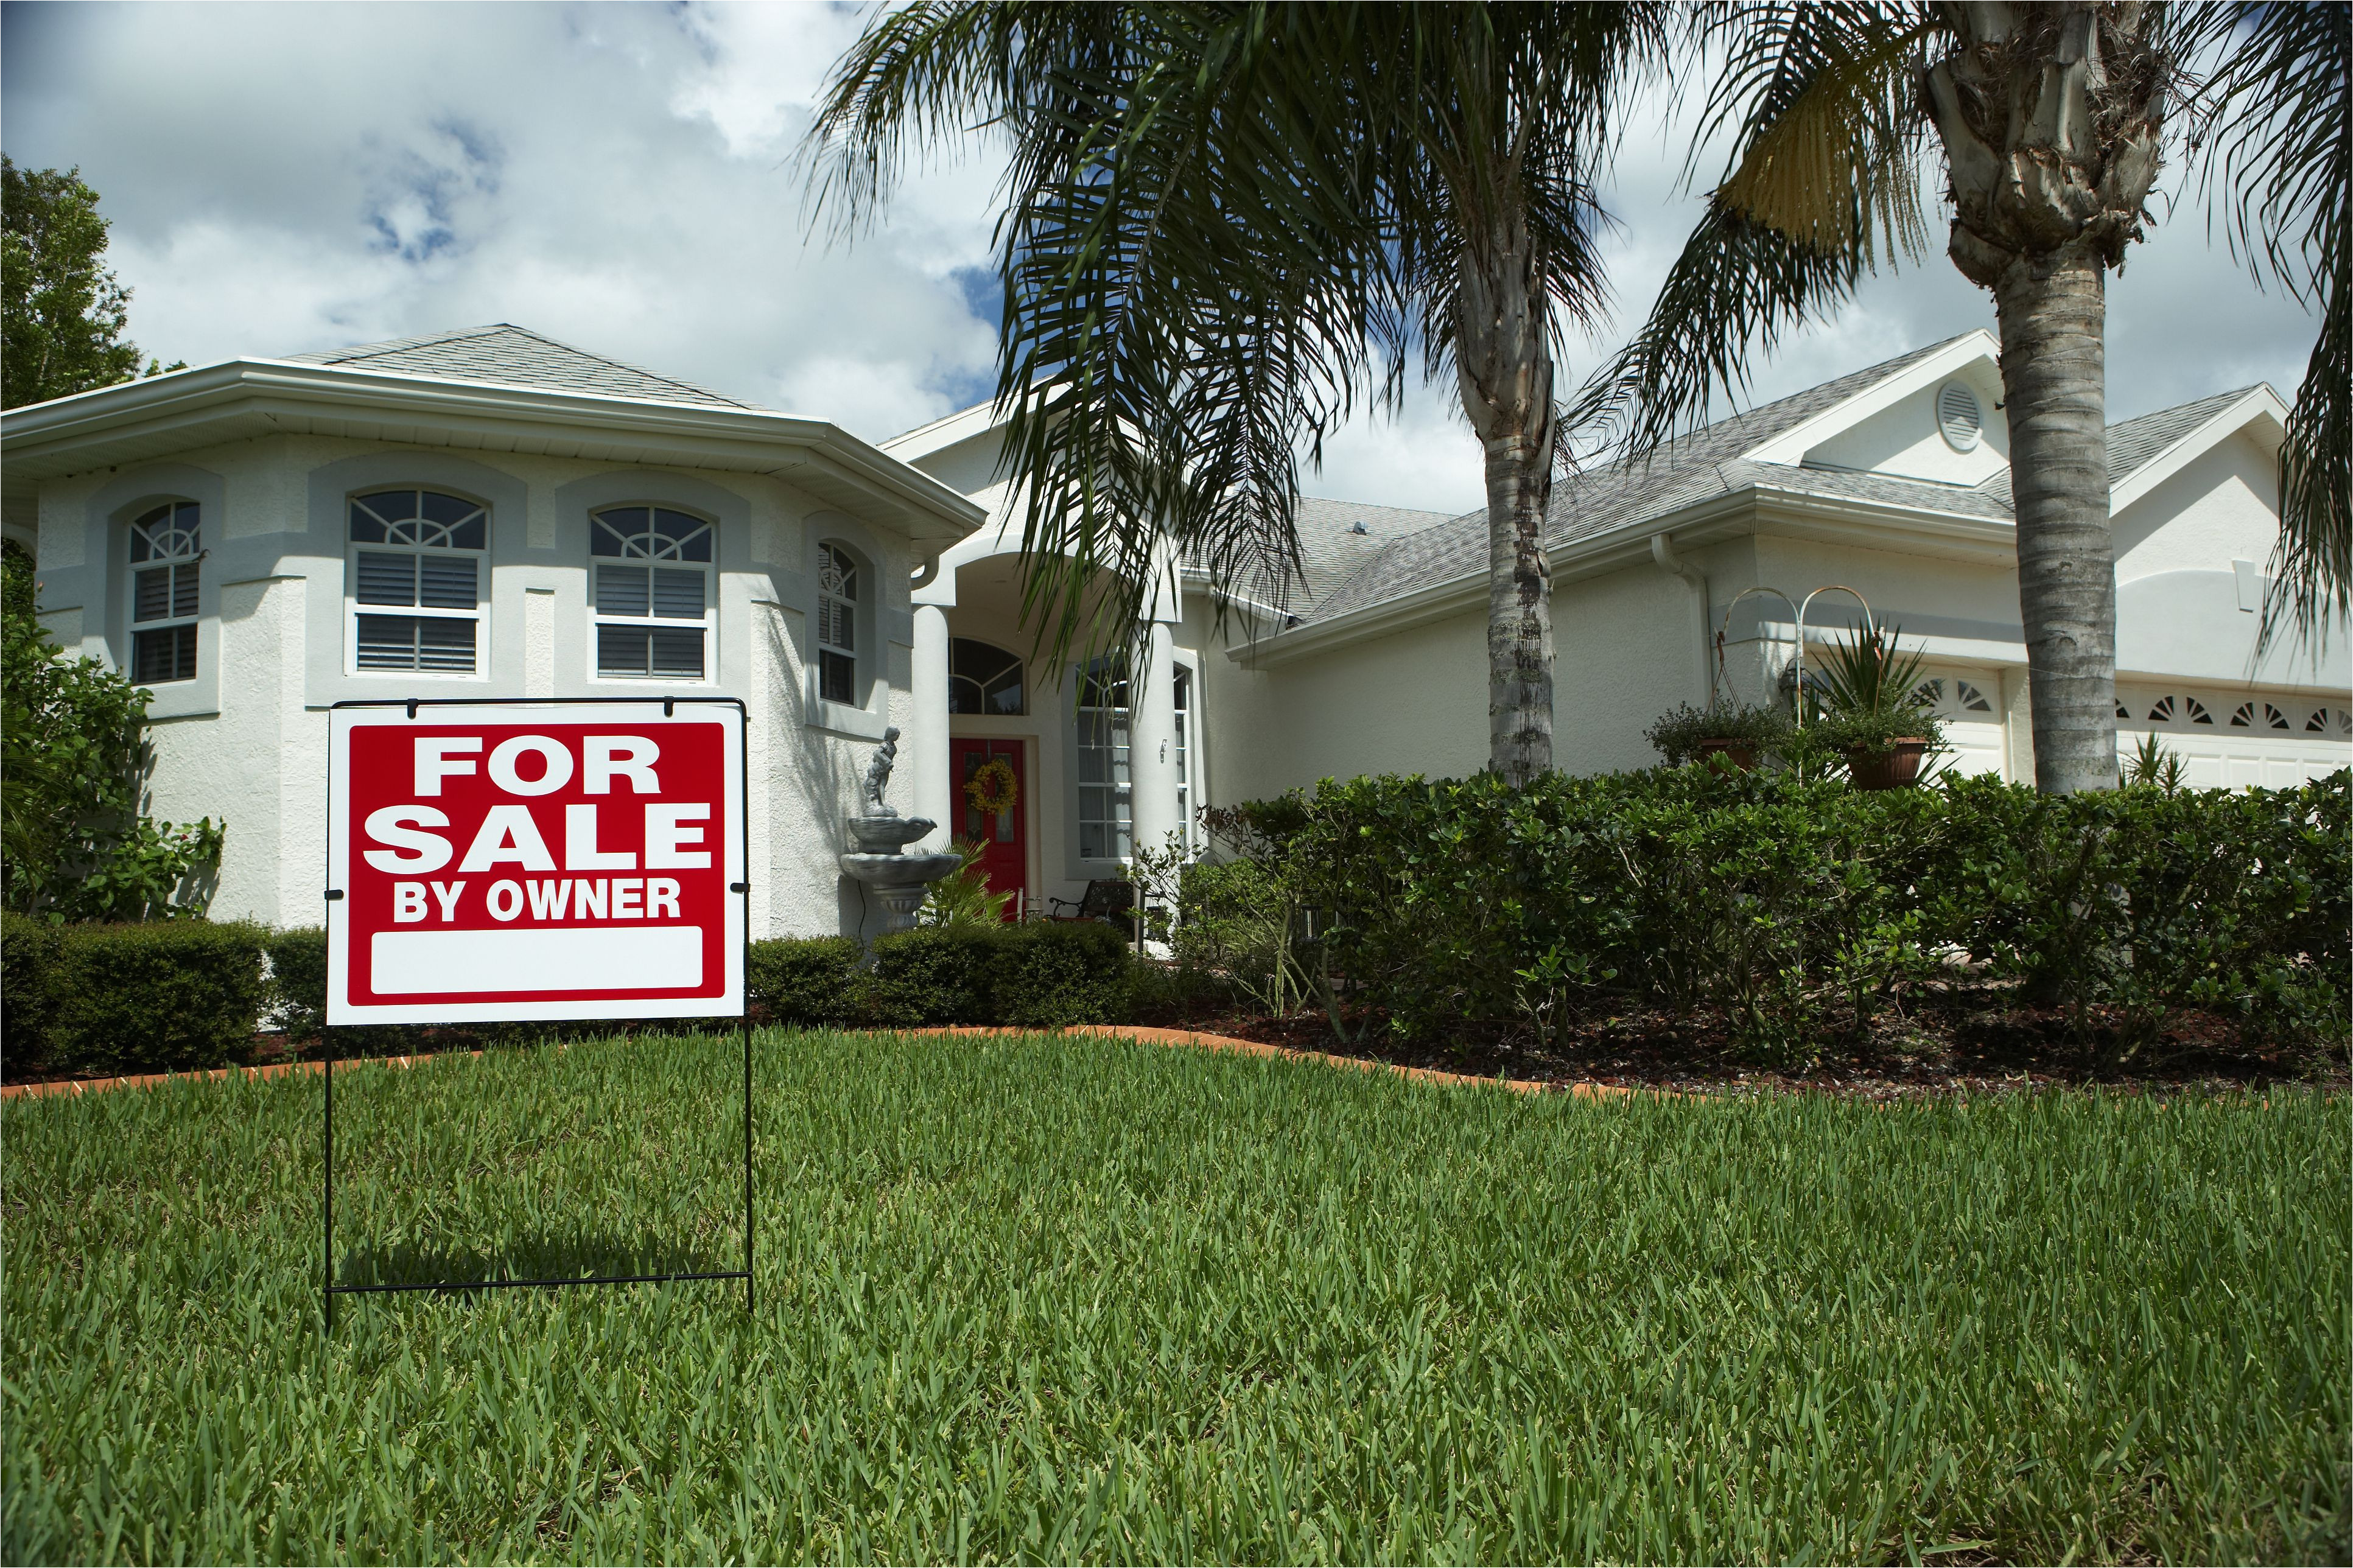 home for sale 172301021 5a91b9c4fa6bcc003773d283 jpg